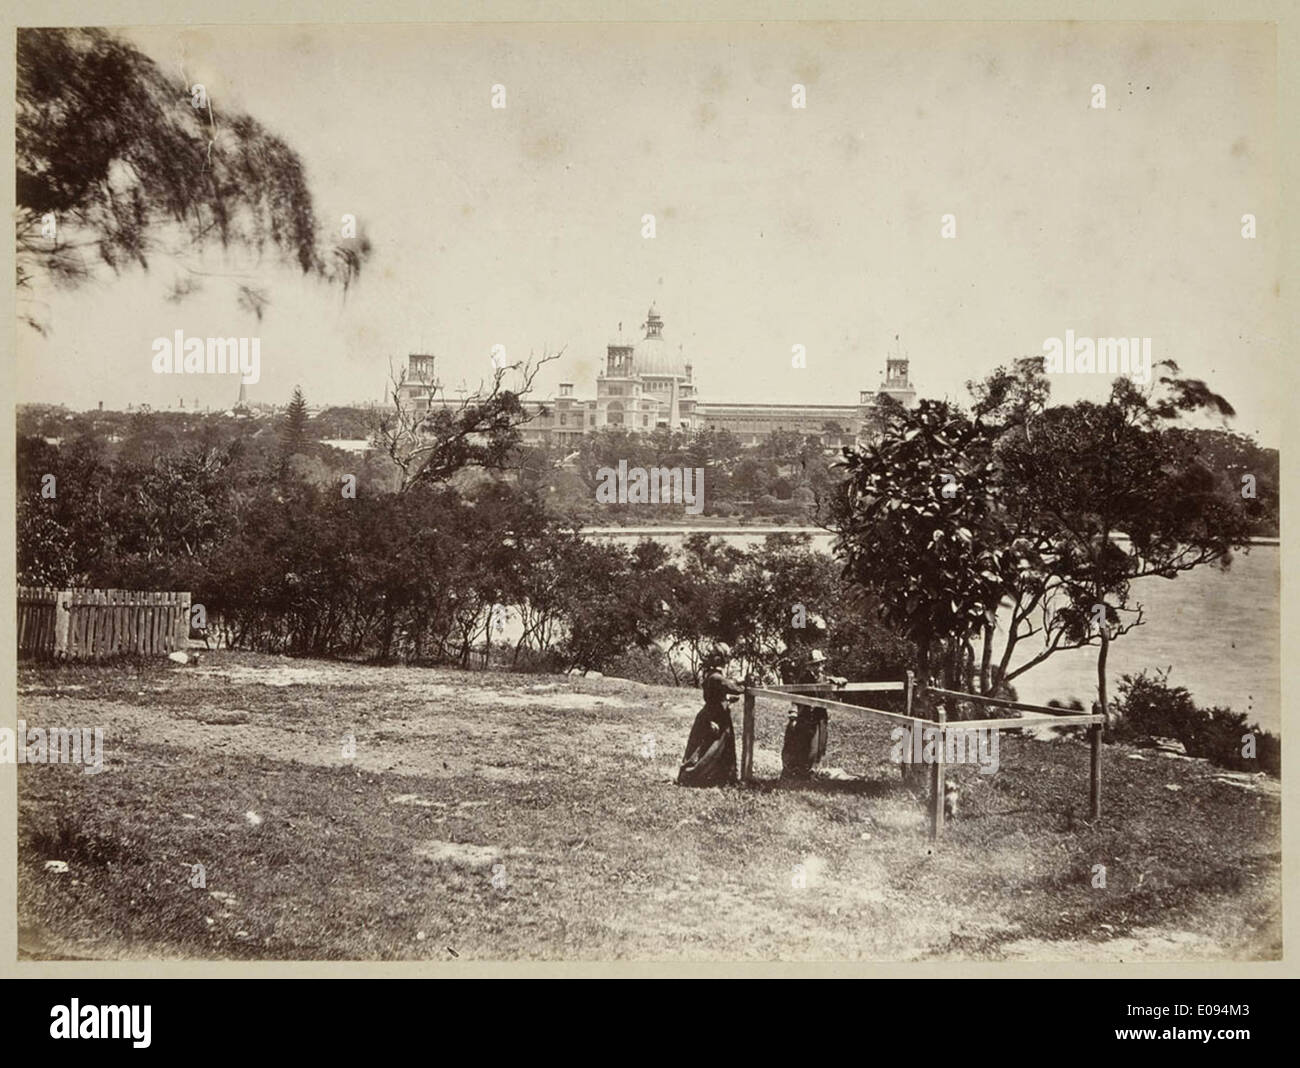 View from Mrs Macquarie's Point looking at Garden Palace c 1879, by Tronier Artist Photographer Stock Photo